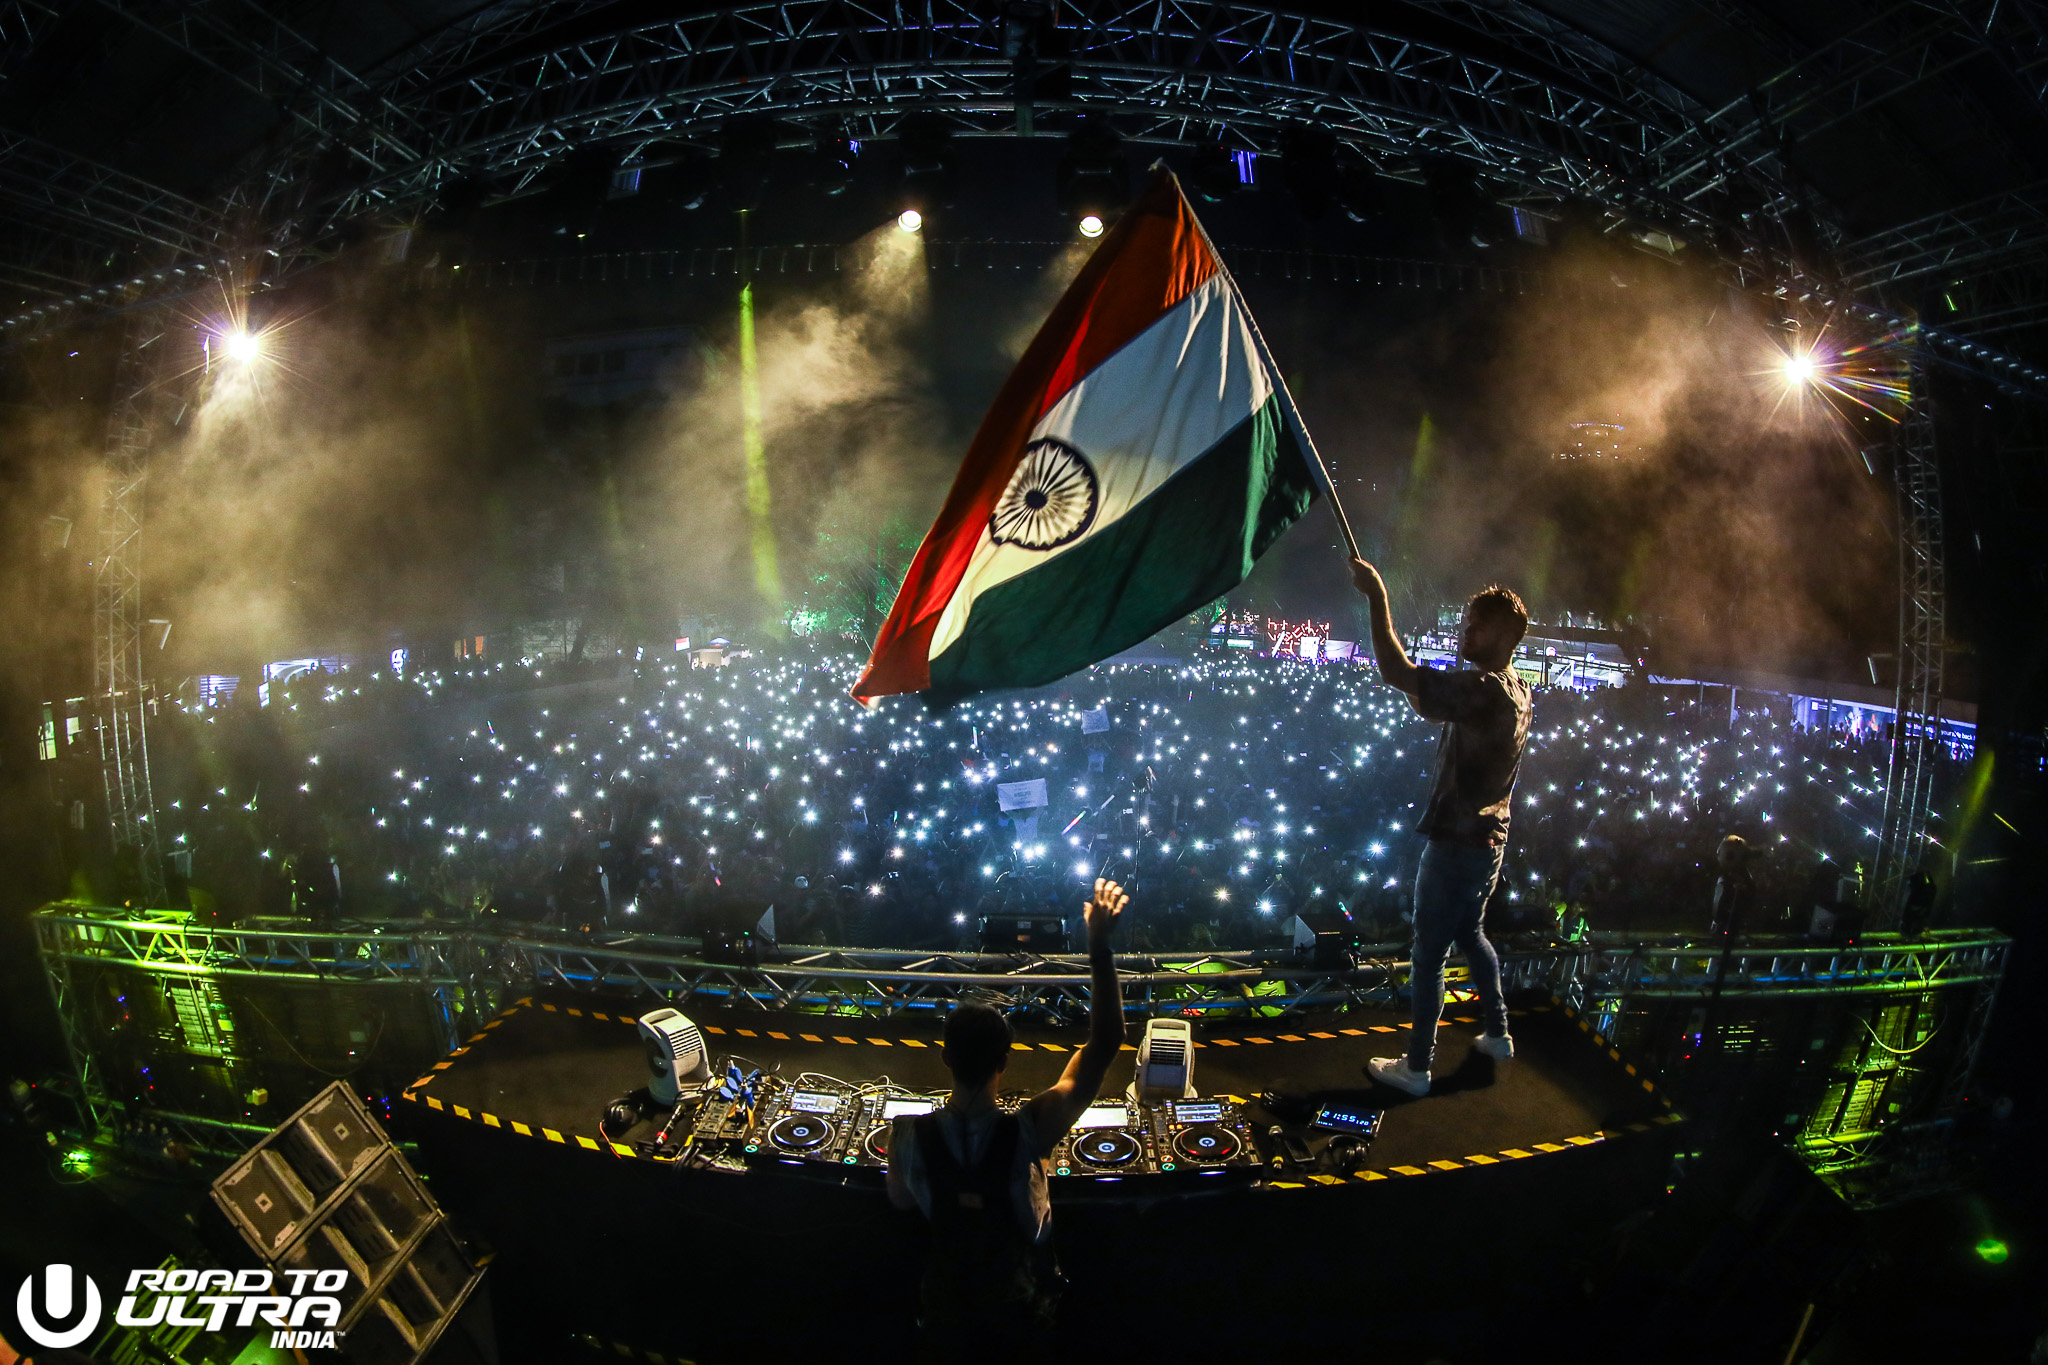 Over 10K in Mumbai and 15K Ecstatic Fans in Delhi Welcome Road to 2048x1365